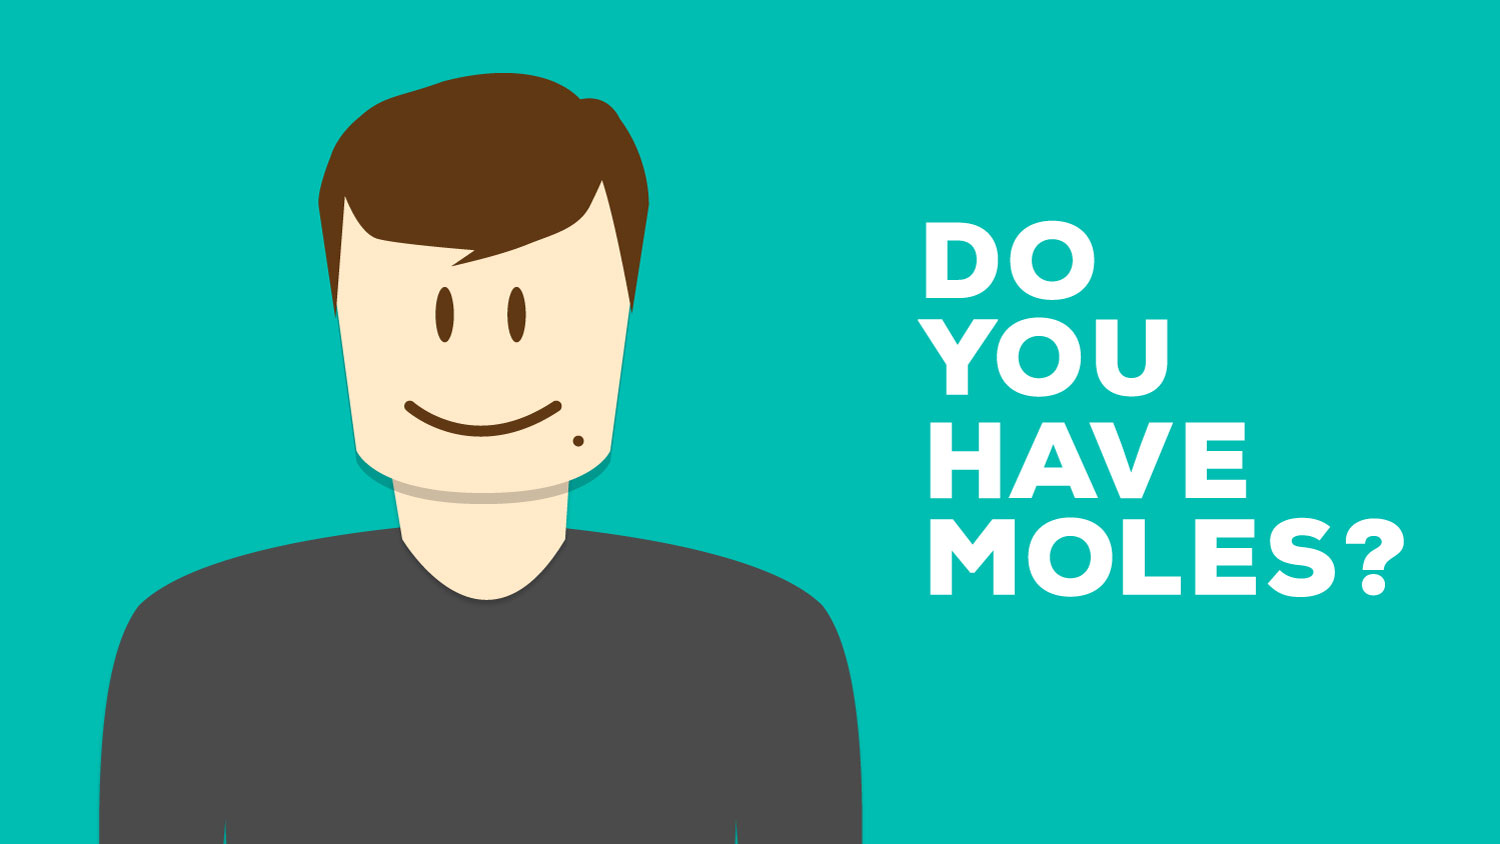 do you have moles